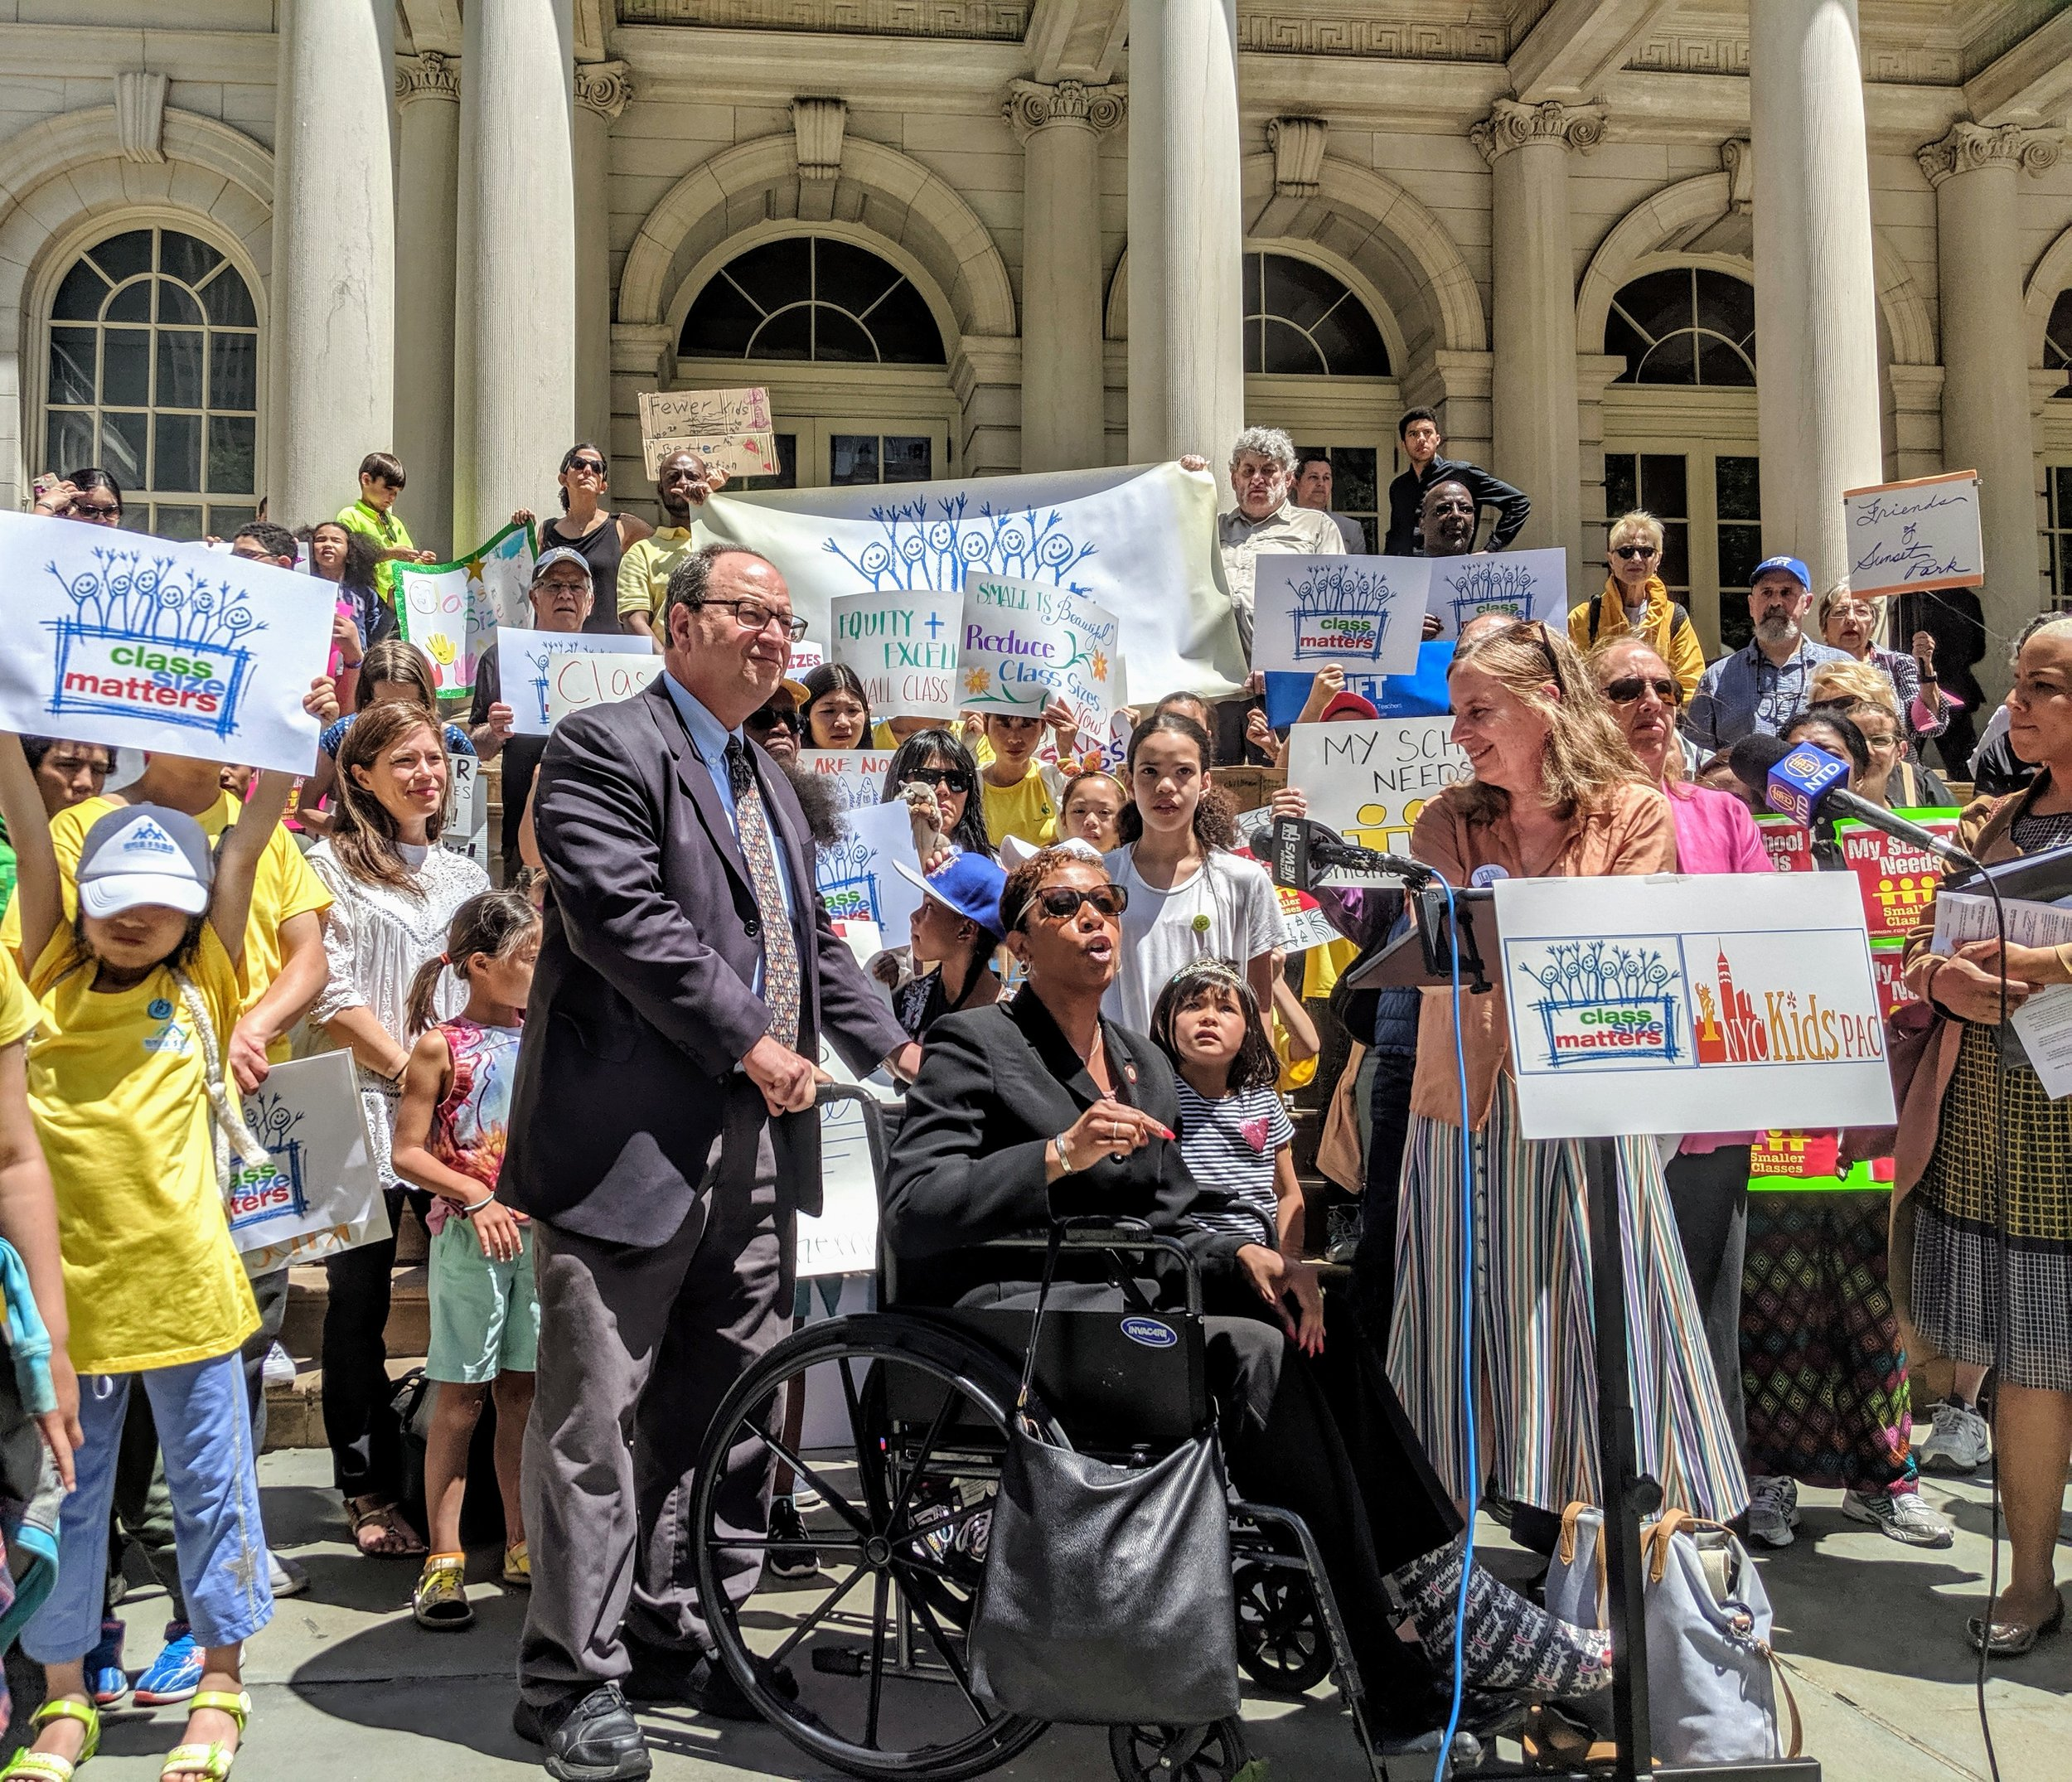 Councilmember Adrienne Adams speaks at a rally for smaller class sizes on June 11 in front of City Hall in Manhattan.  Eagle  photo by Phineas Rueckert.